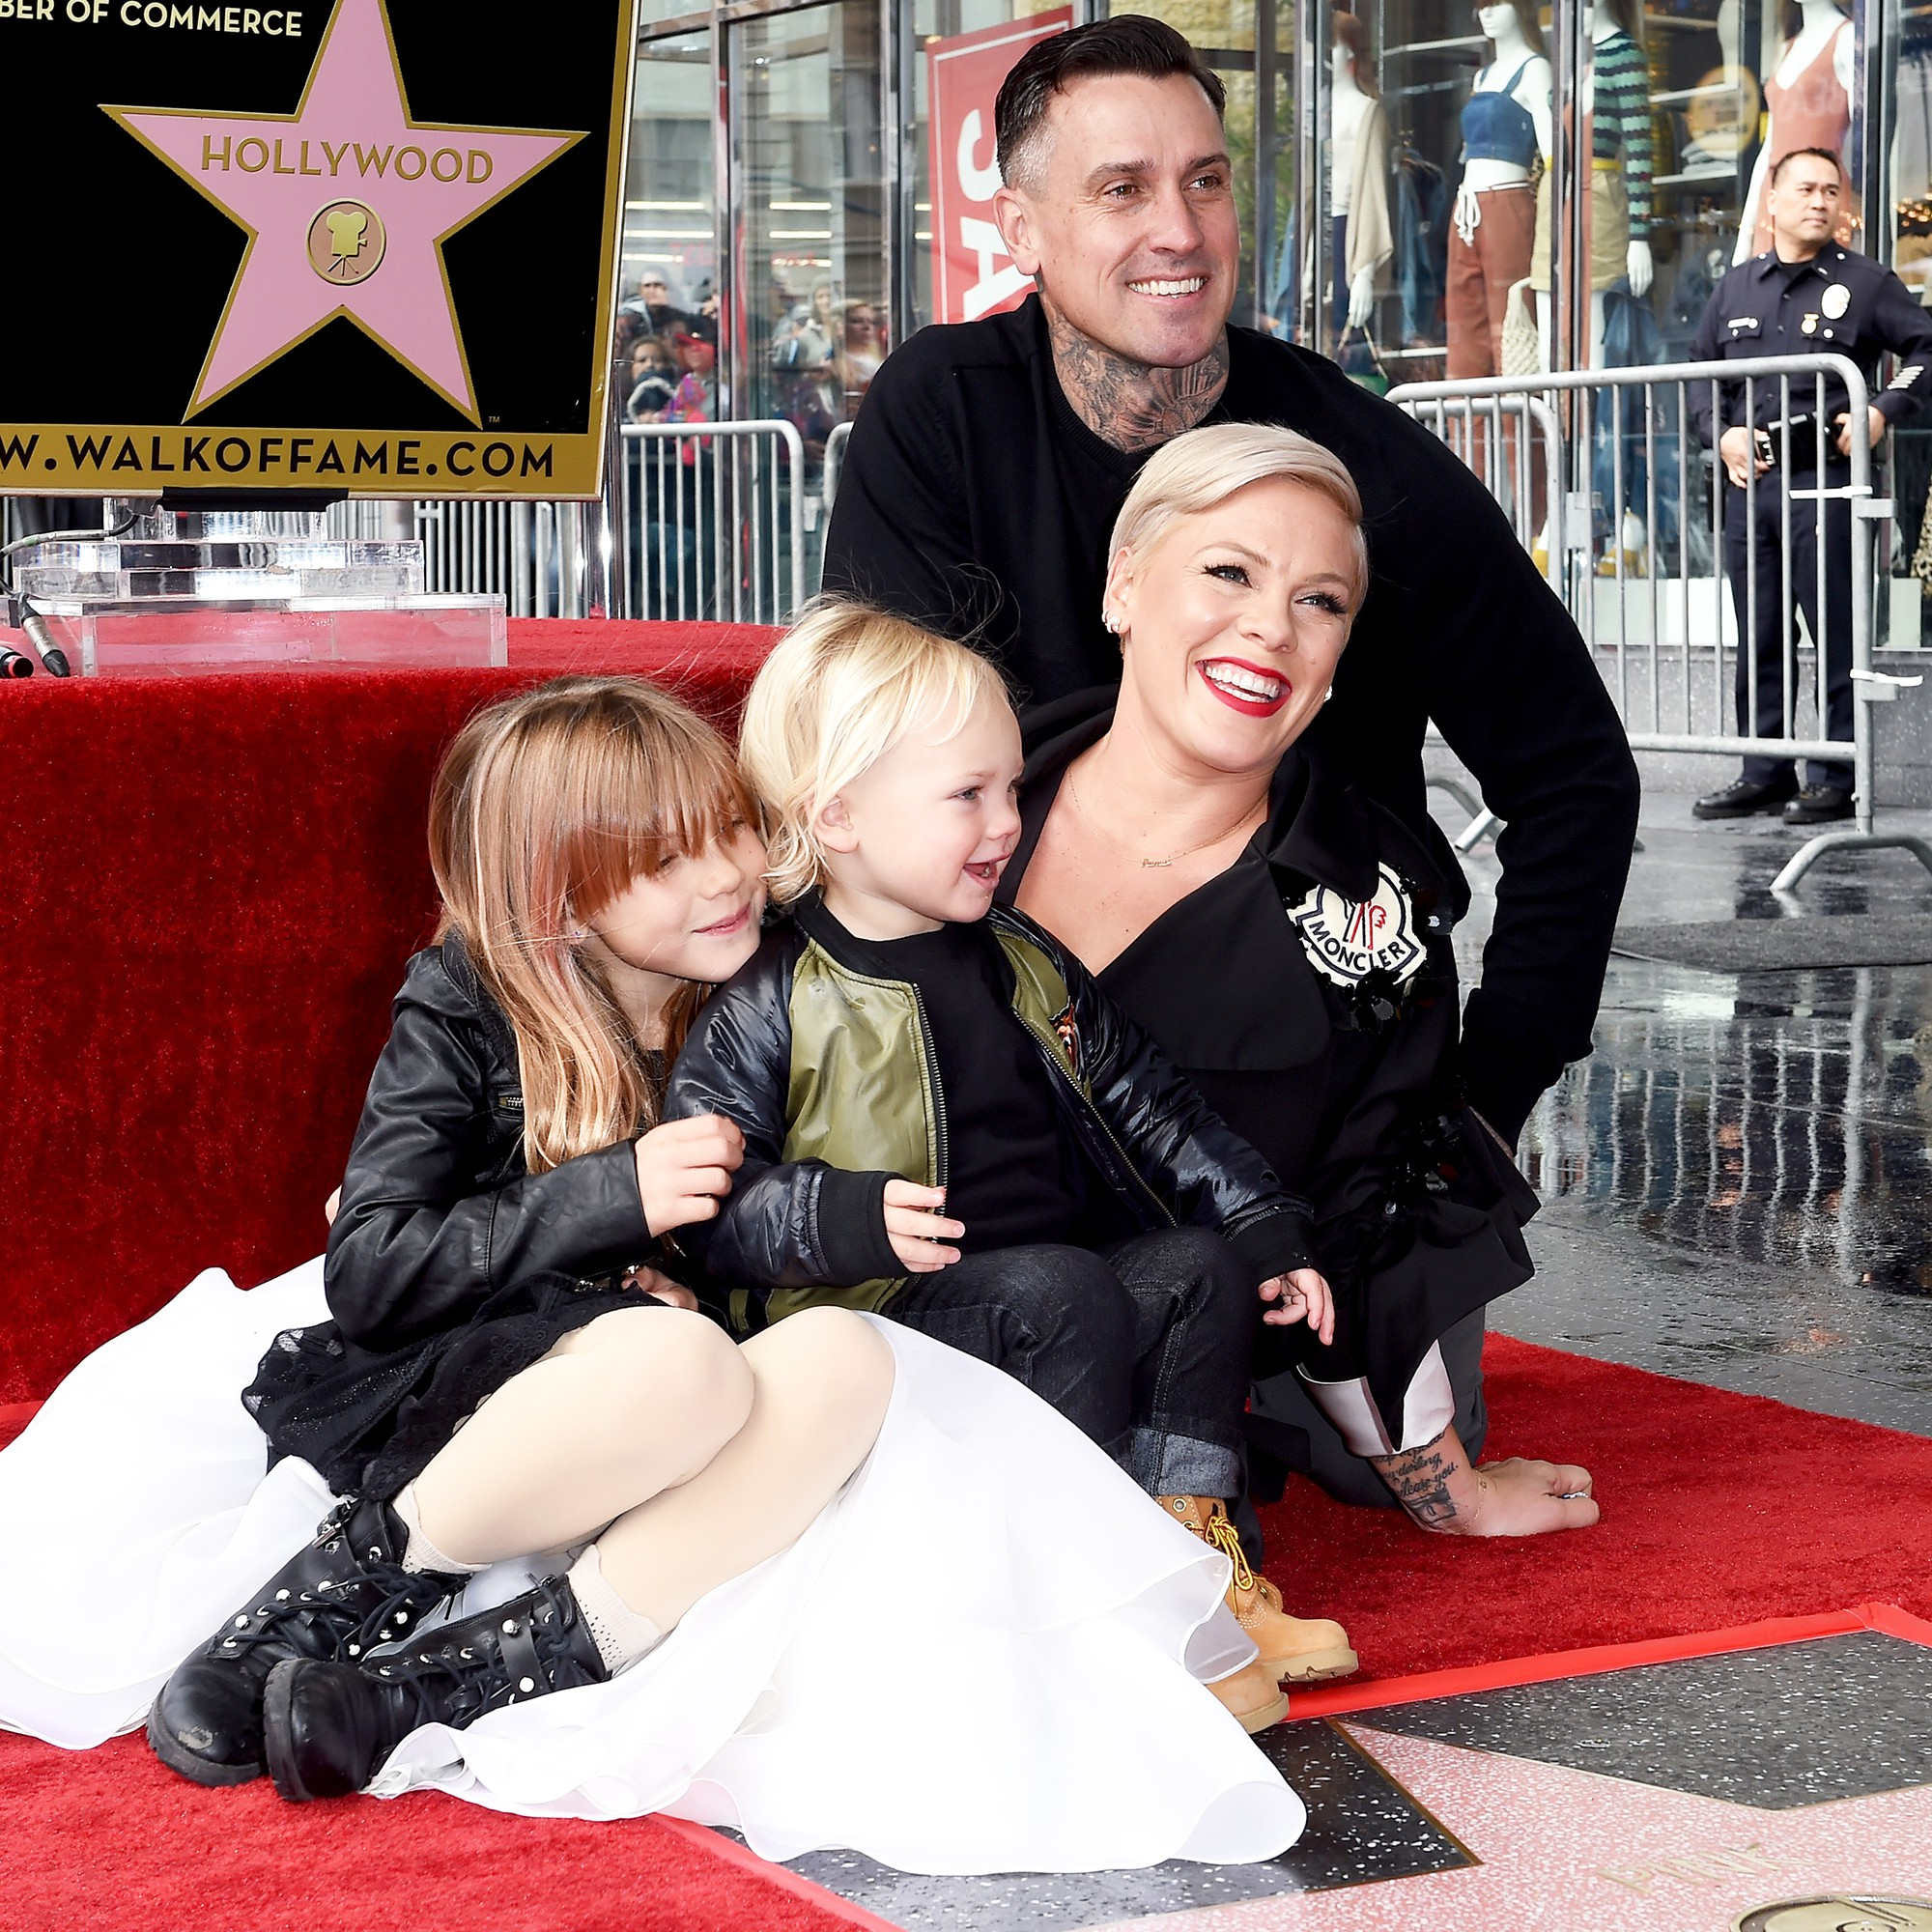 pink-receives-homemade-grammy-from-daughter-after-losing-to-ariana-grande-15498832885241821323.jpg